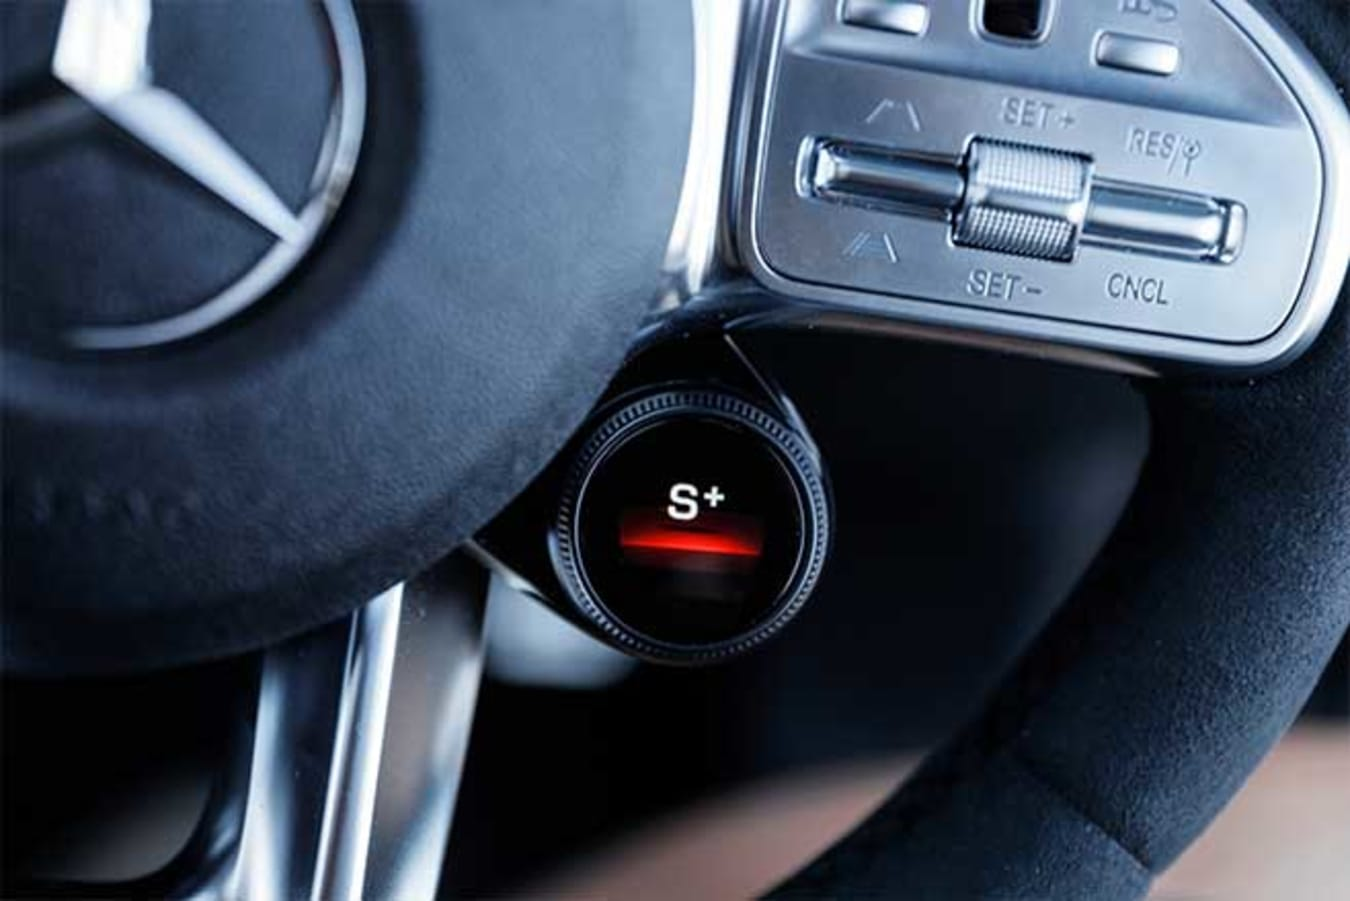 AMG drive mode selector in Sport+